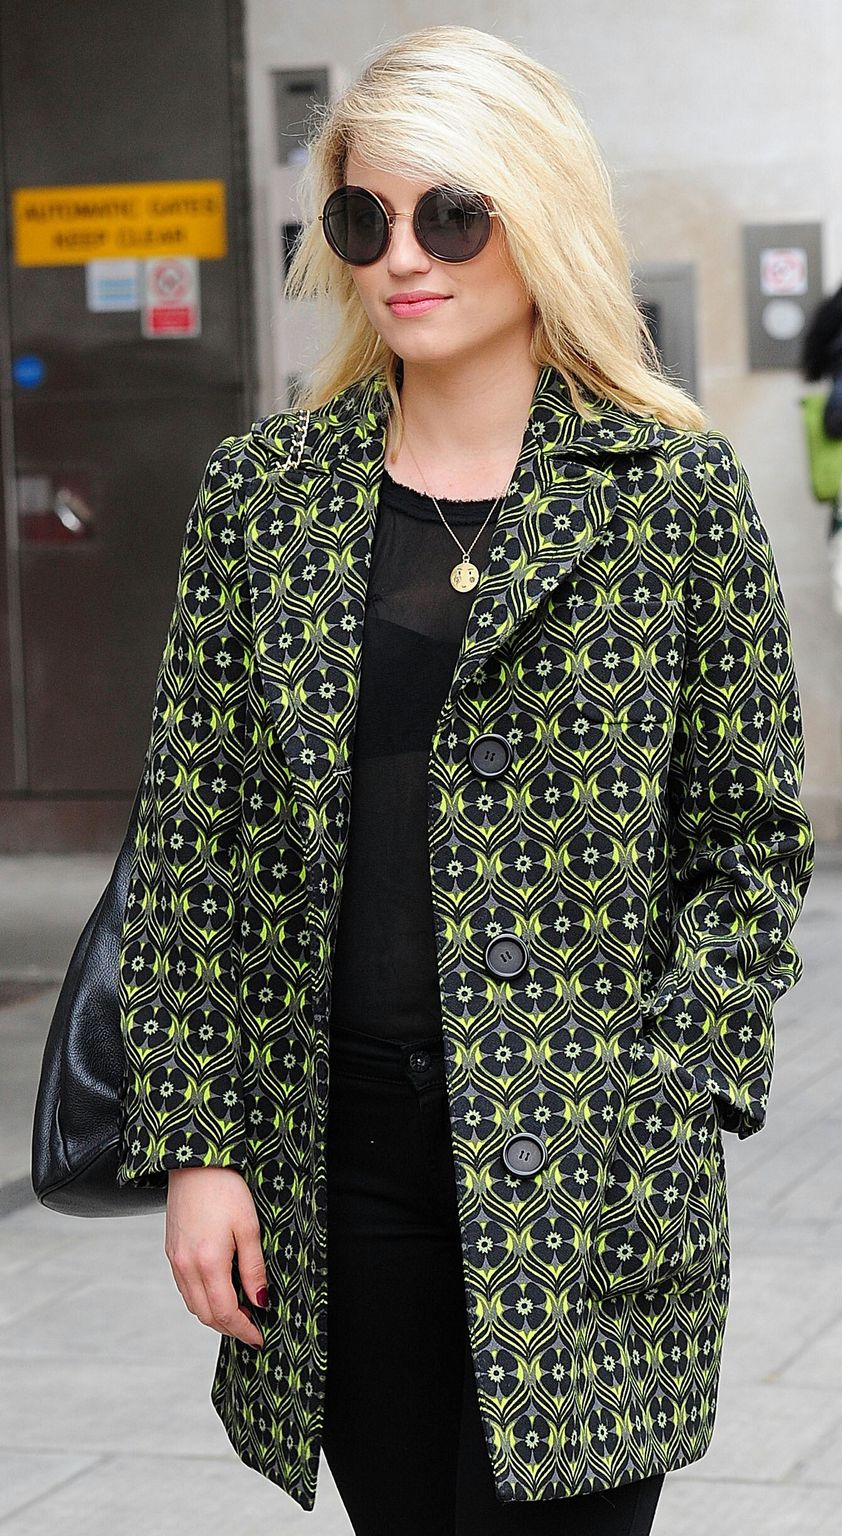 Dianna Agron in London, England-1